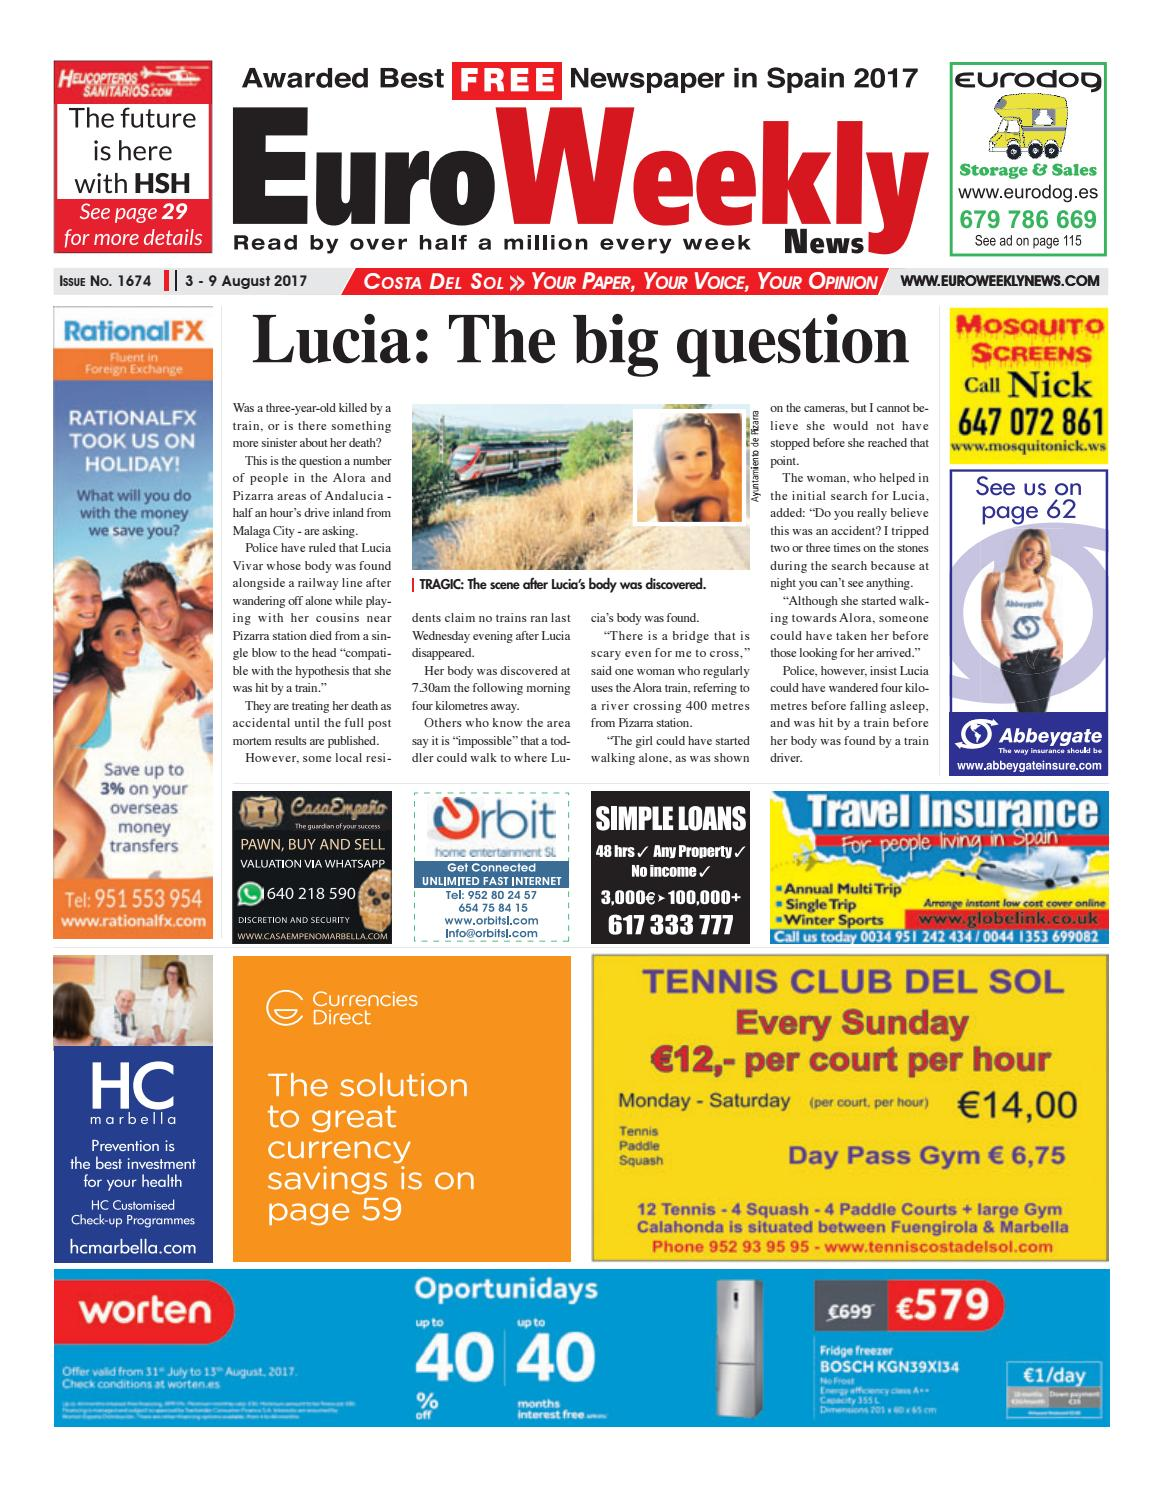 fdf9be8d54ab Euro Weekly News - Costa del Sol 3 - 9 August 2017 Issue 1674 by ...